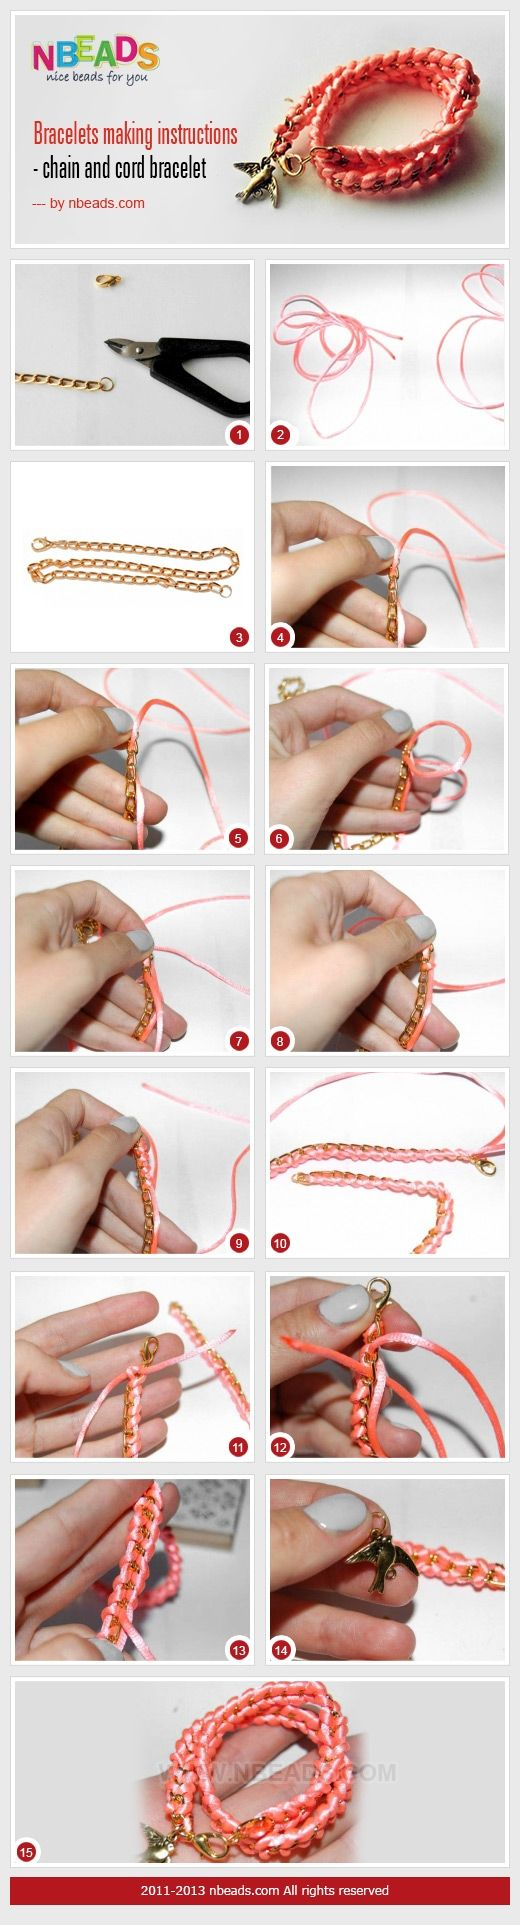 wrap Bracelet Instructions - Chain And Cord Bracelet – Nbeads